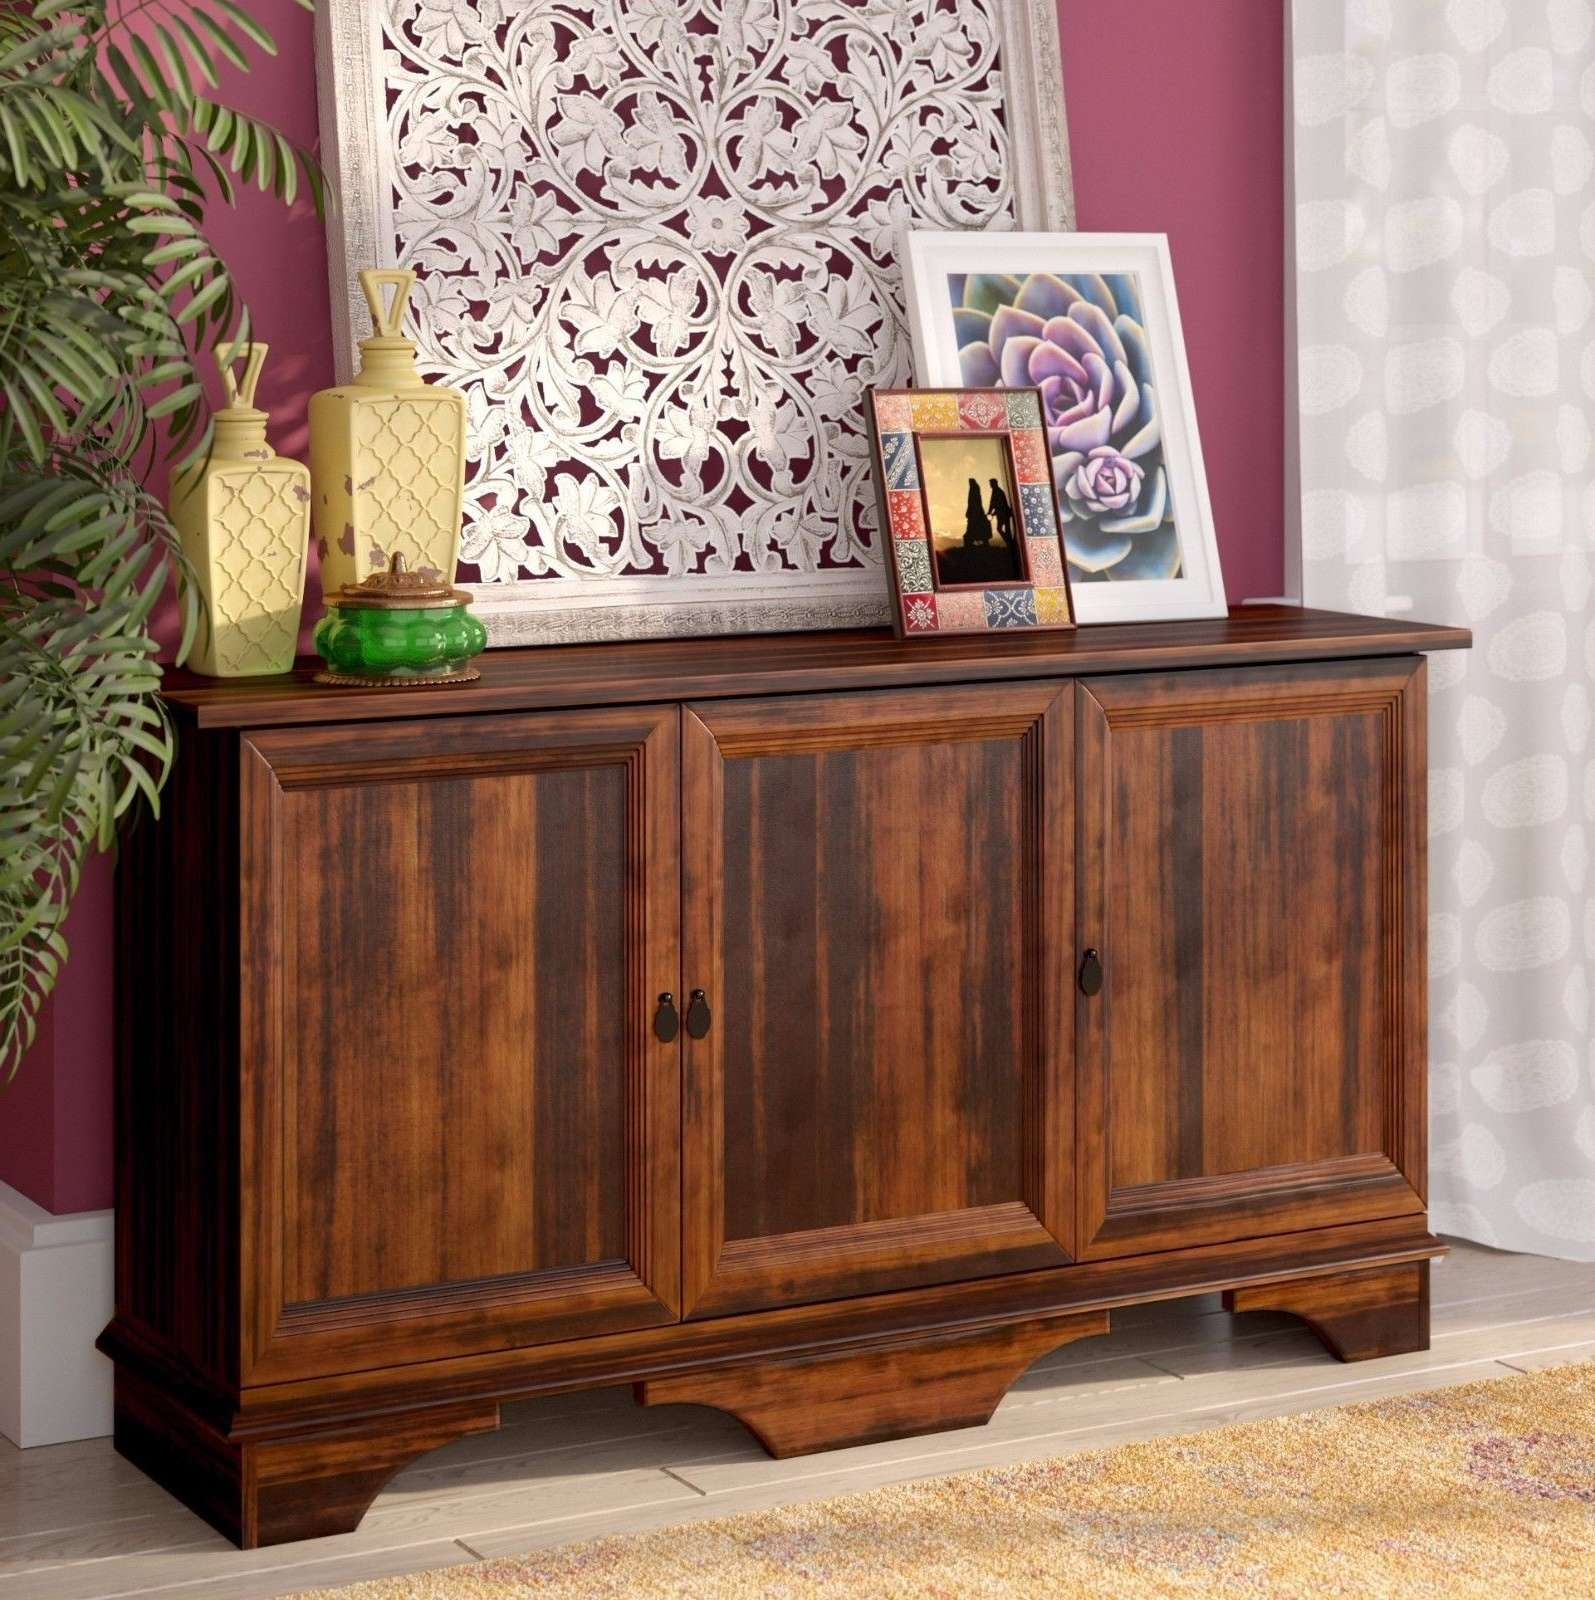 Rustic/primitive Sideboards And Buffets | Ebay Intended For Rustic Sideboards Furniture (View 17 of 20)